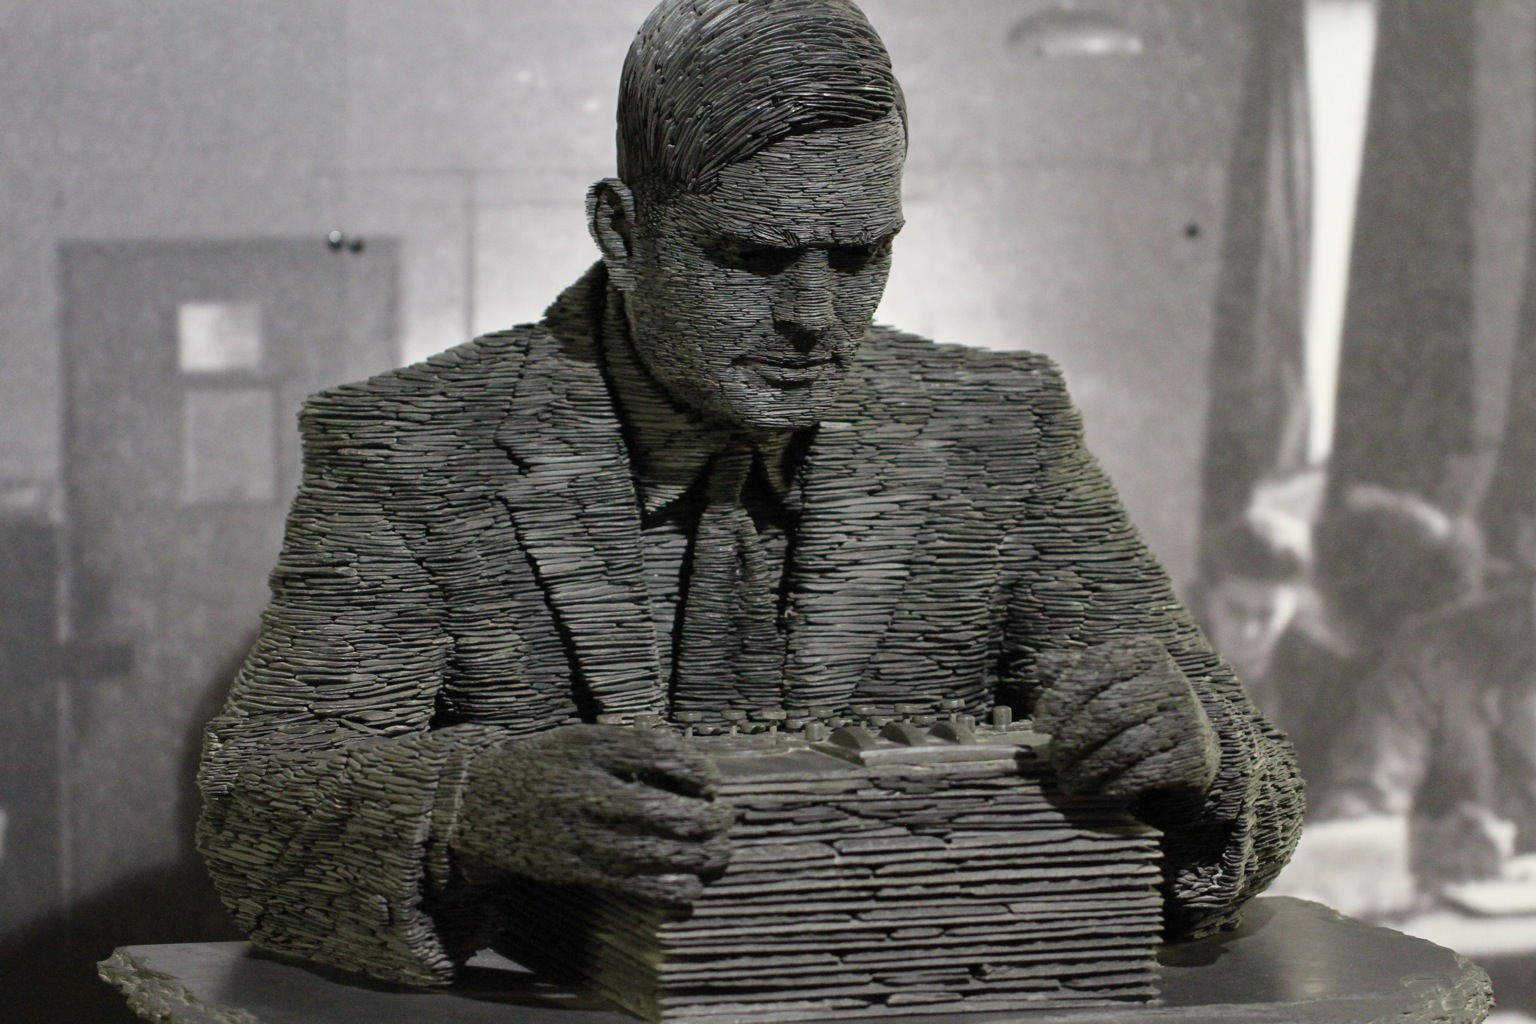 Alan Turing Stone Sculpture